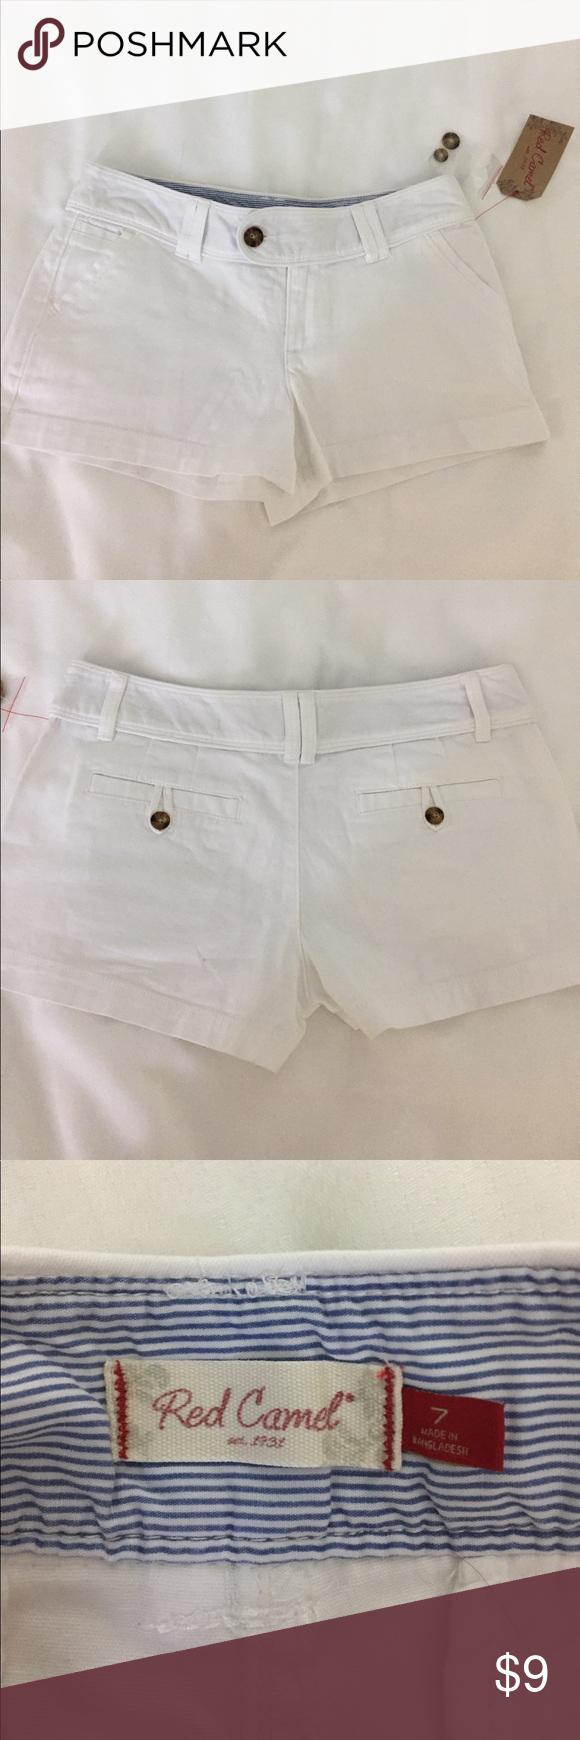 NWT White shorts Red Camel NWT shorts. Measures 10 inches from top to bottom hem. Size 7 Red Camel Shorts